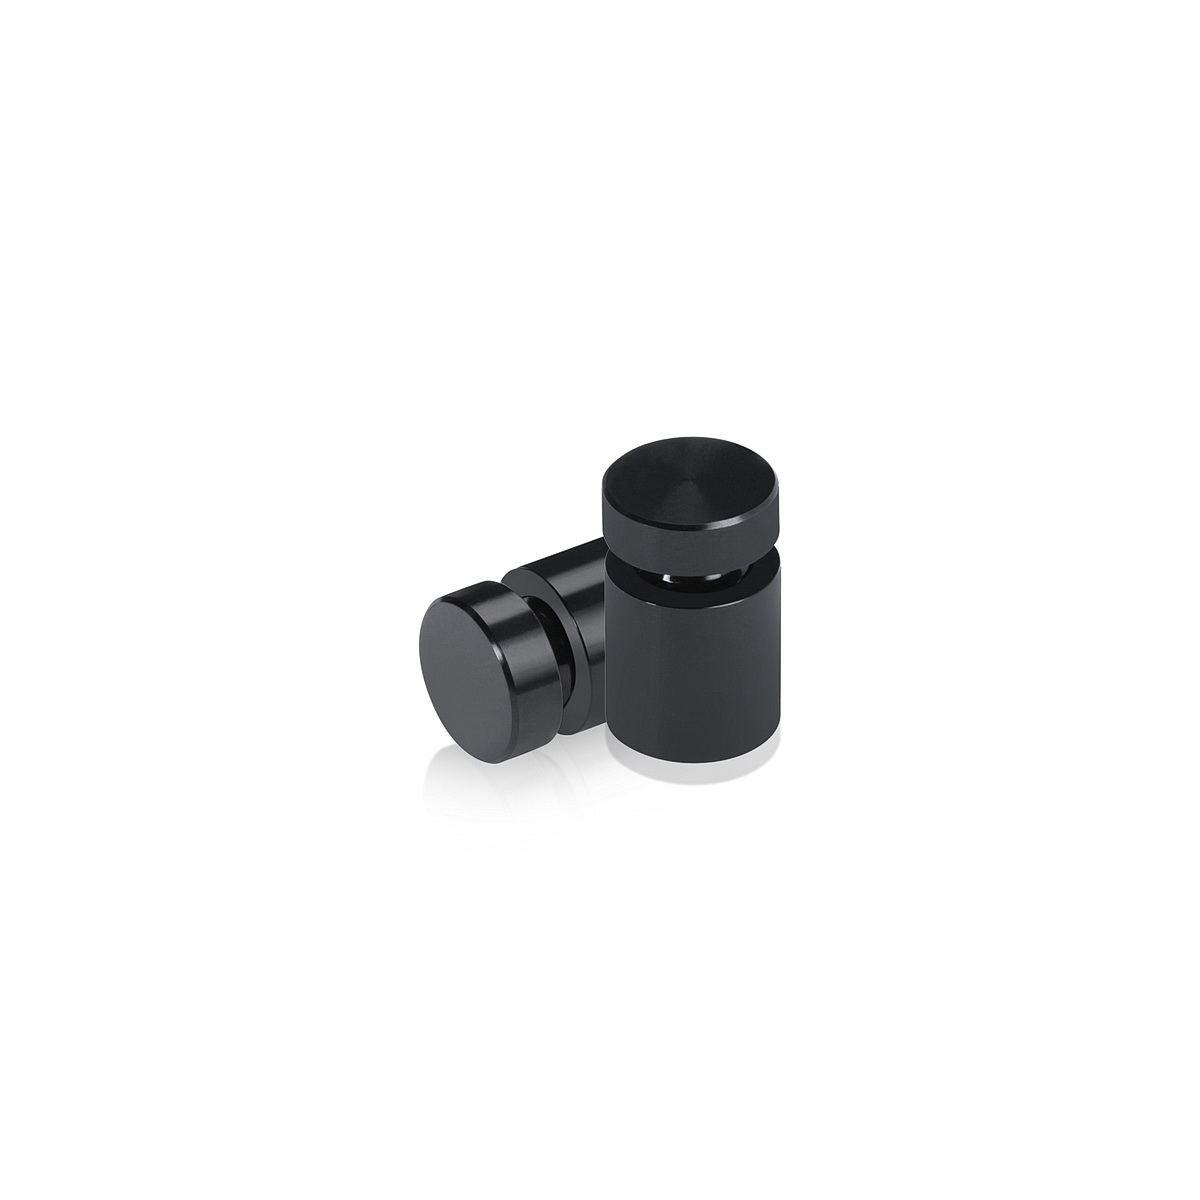 1/2'' Diameter X 1/2'' Barrel Length, Affordable Aluminum Standoffs, Black Anodized Finish Easy Fasten Standoff (For Inside / Outside use)